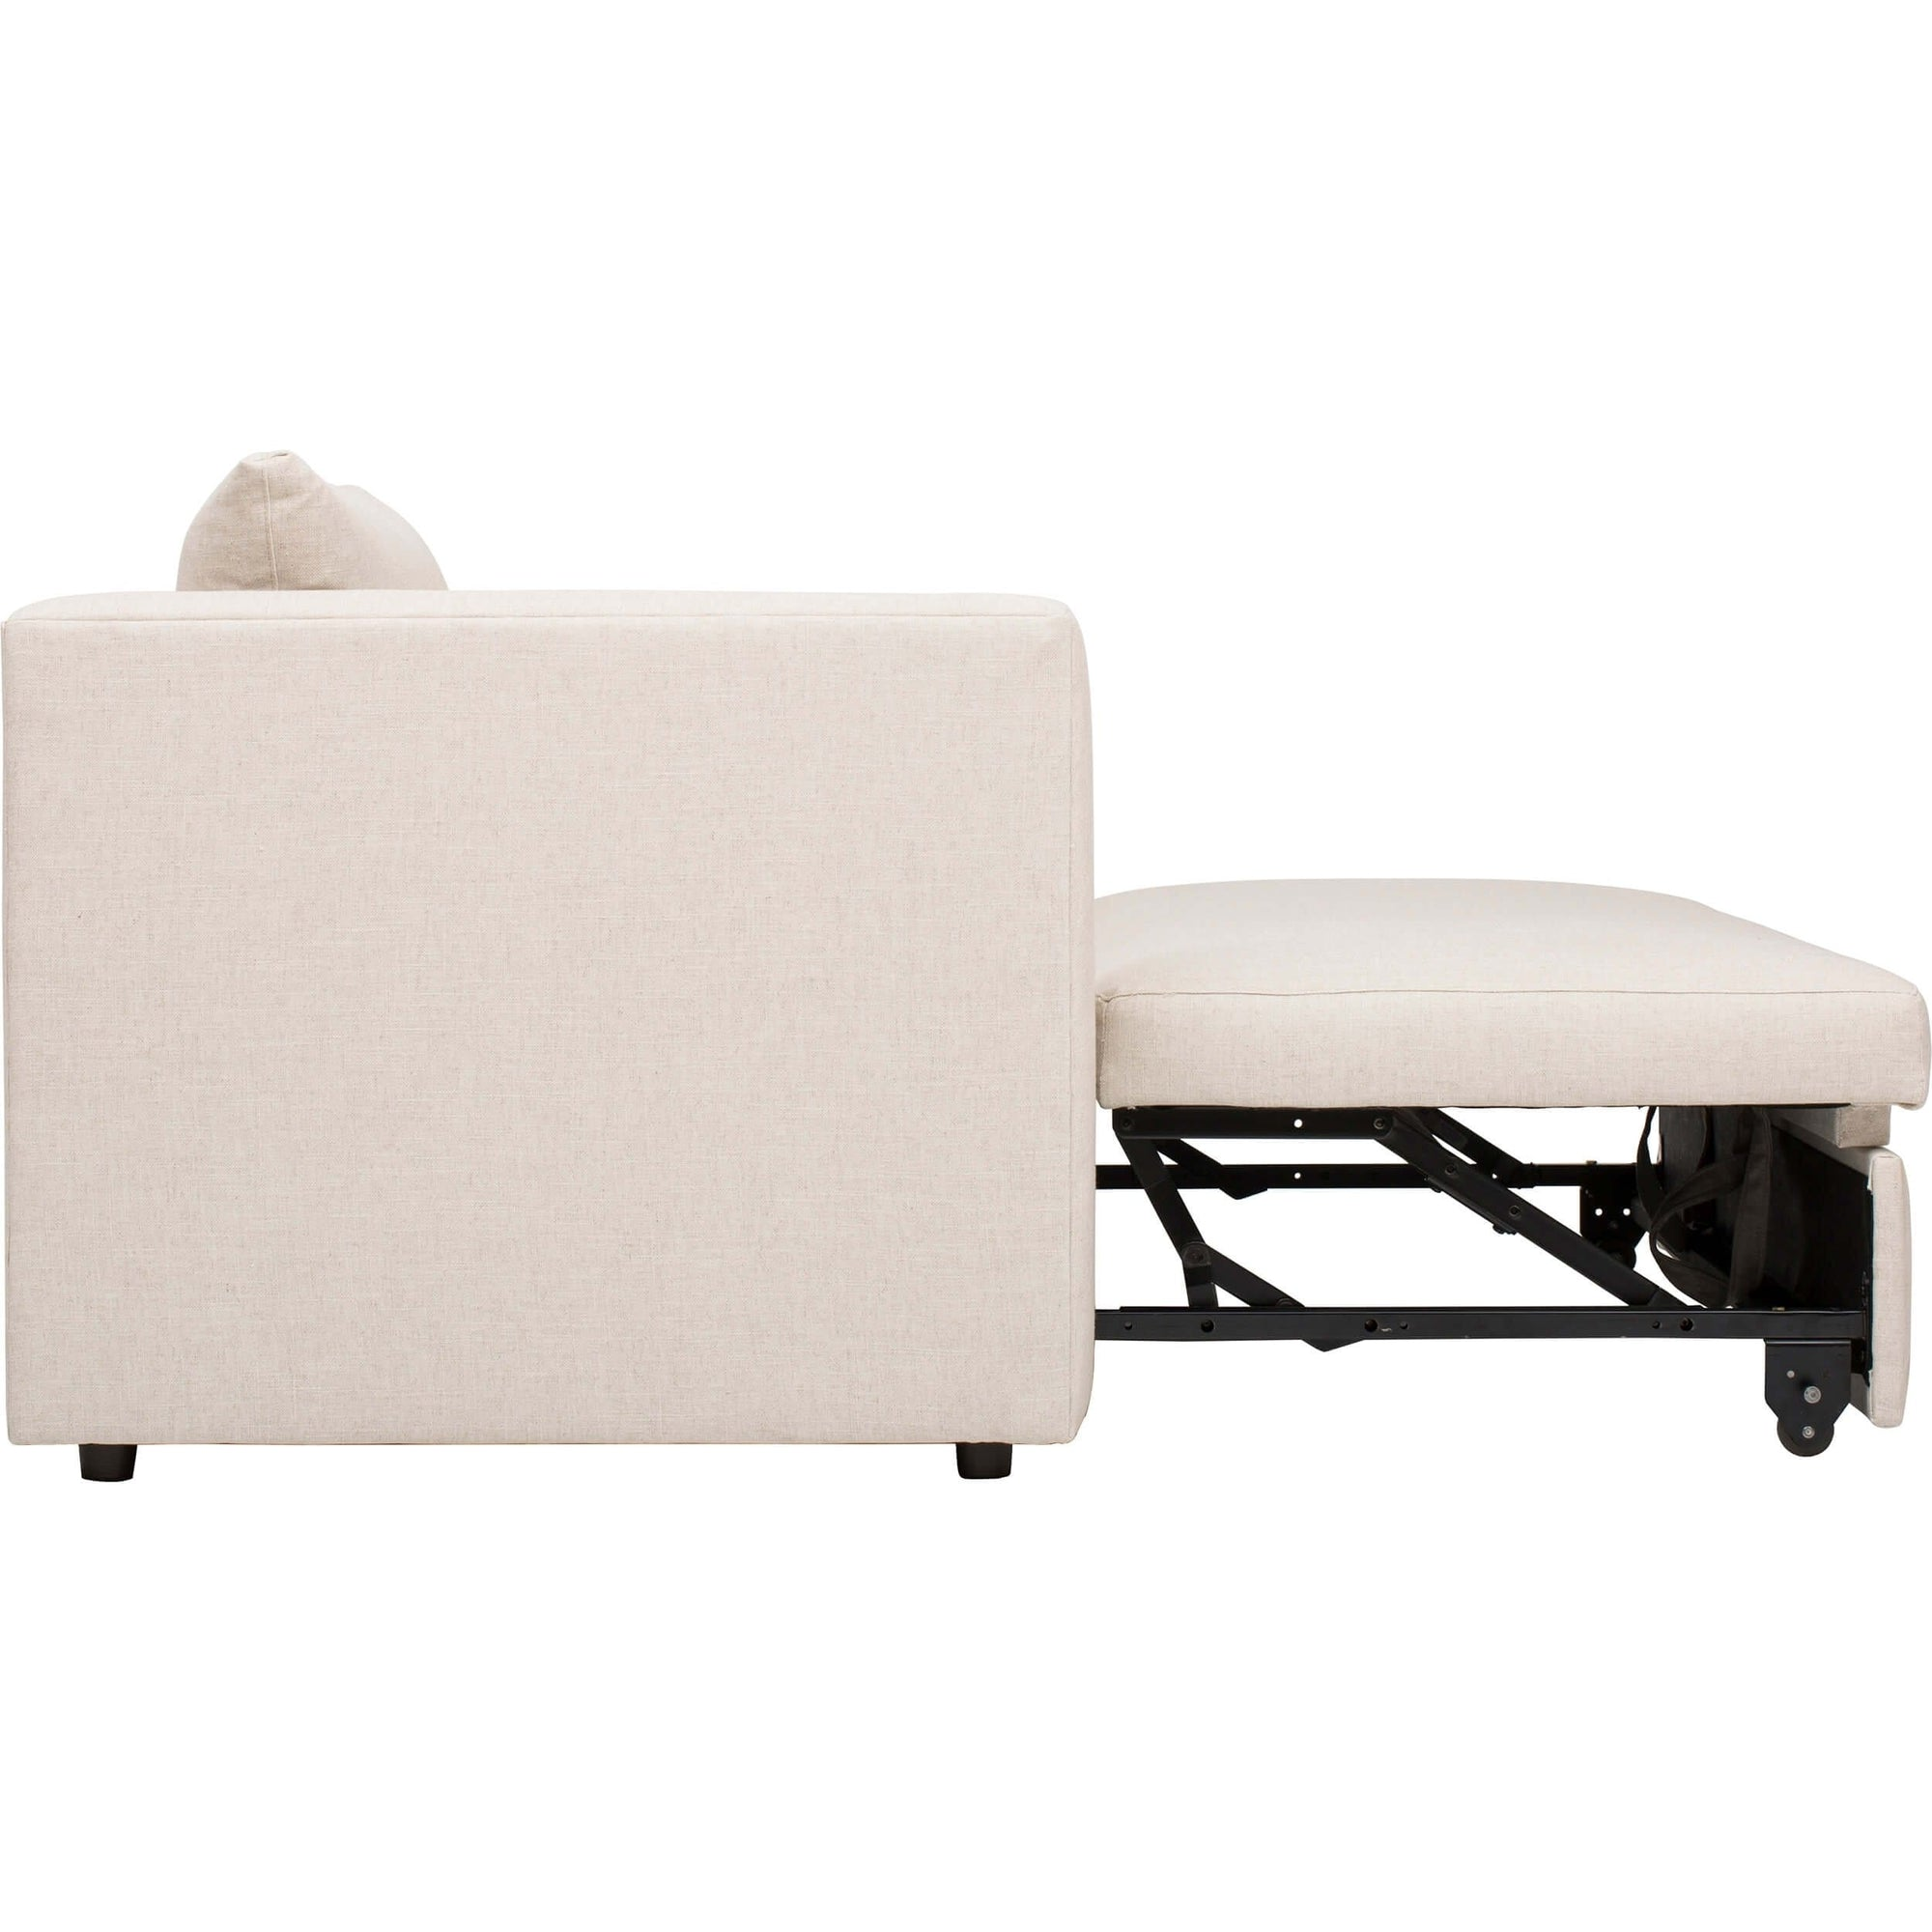 Pleasing Dempsey Trundle Bed Sofa Crevere Creme High Fashion Home Short Links Chair Design For Home Short Linksinfo